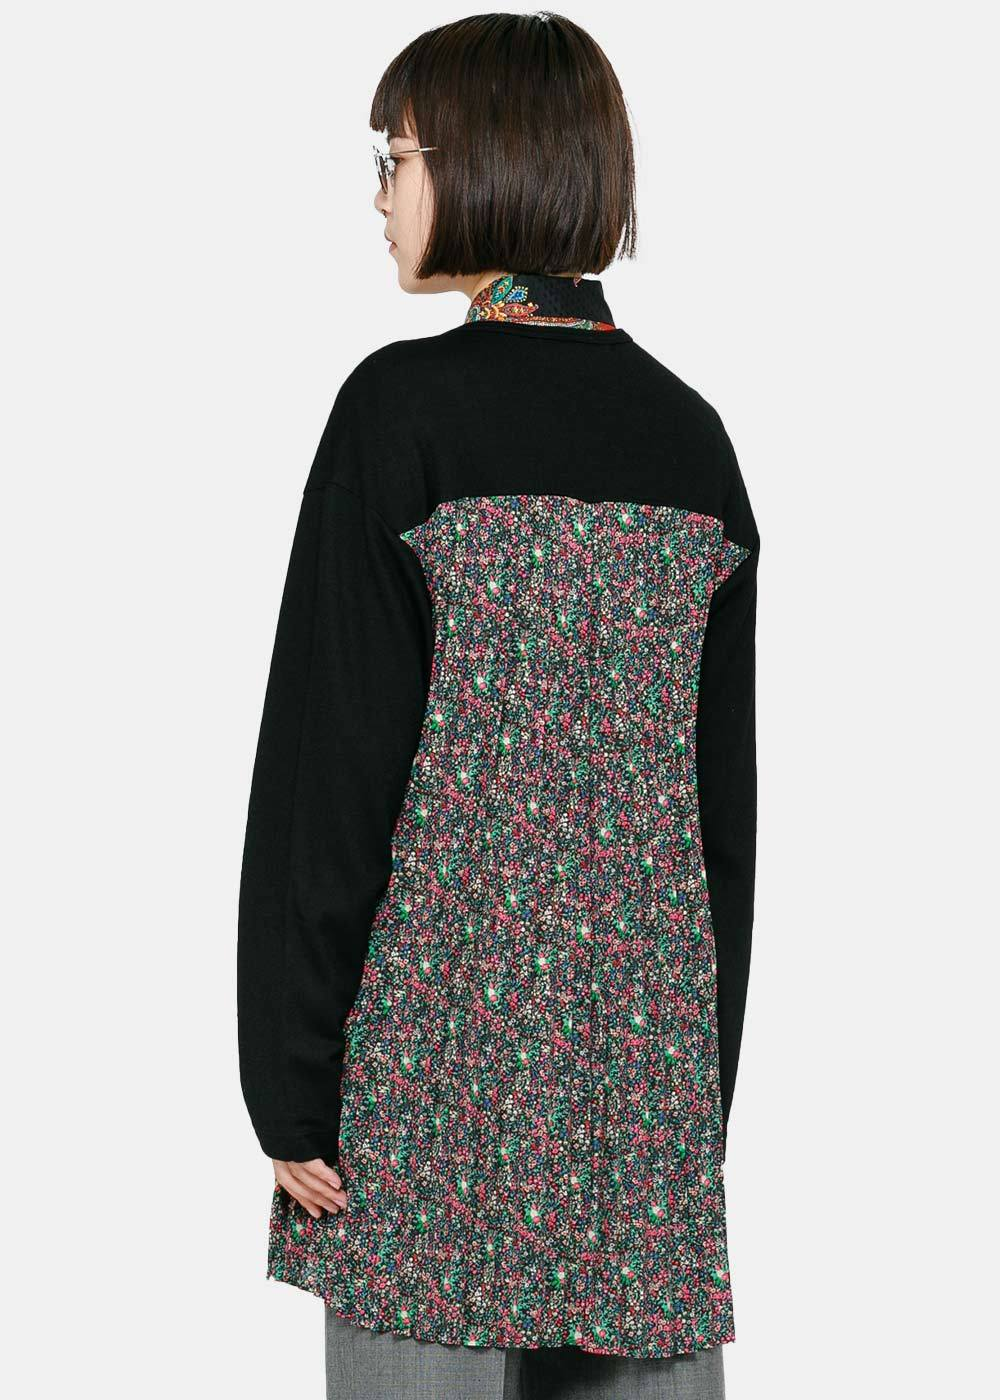 Black Floral Paneled Dress